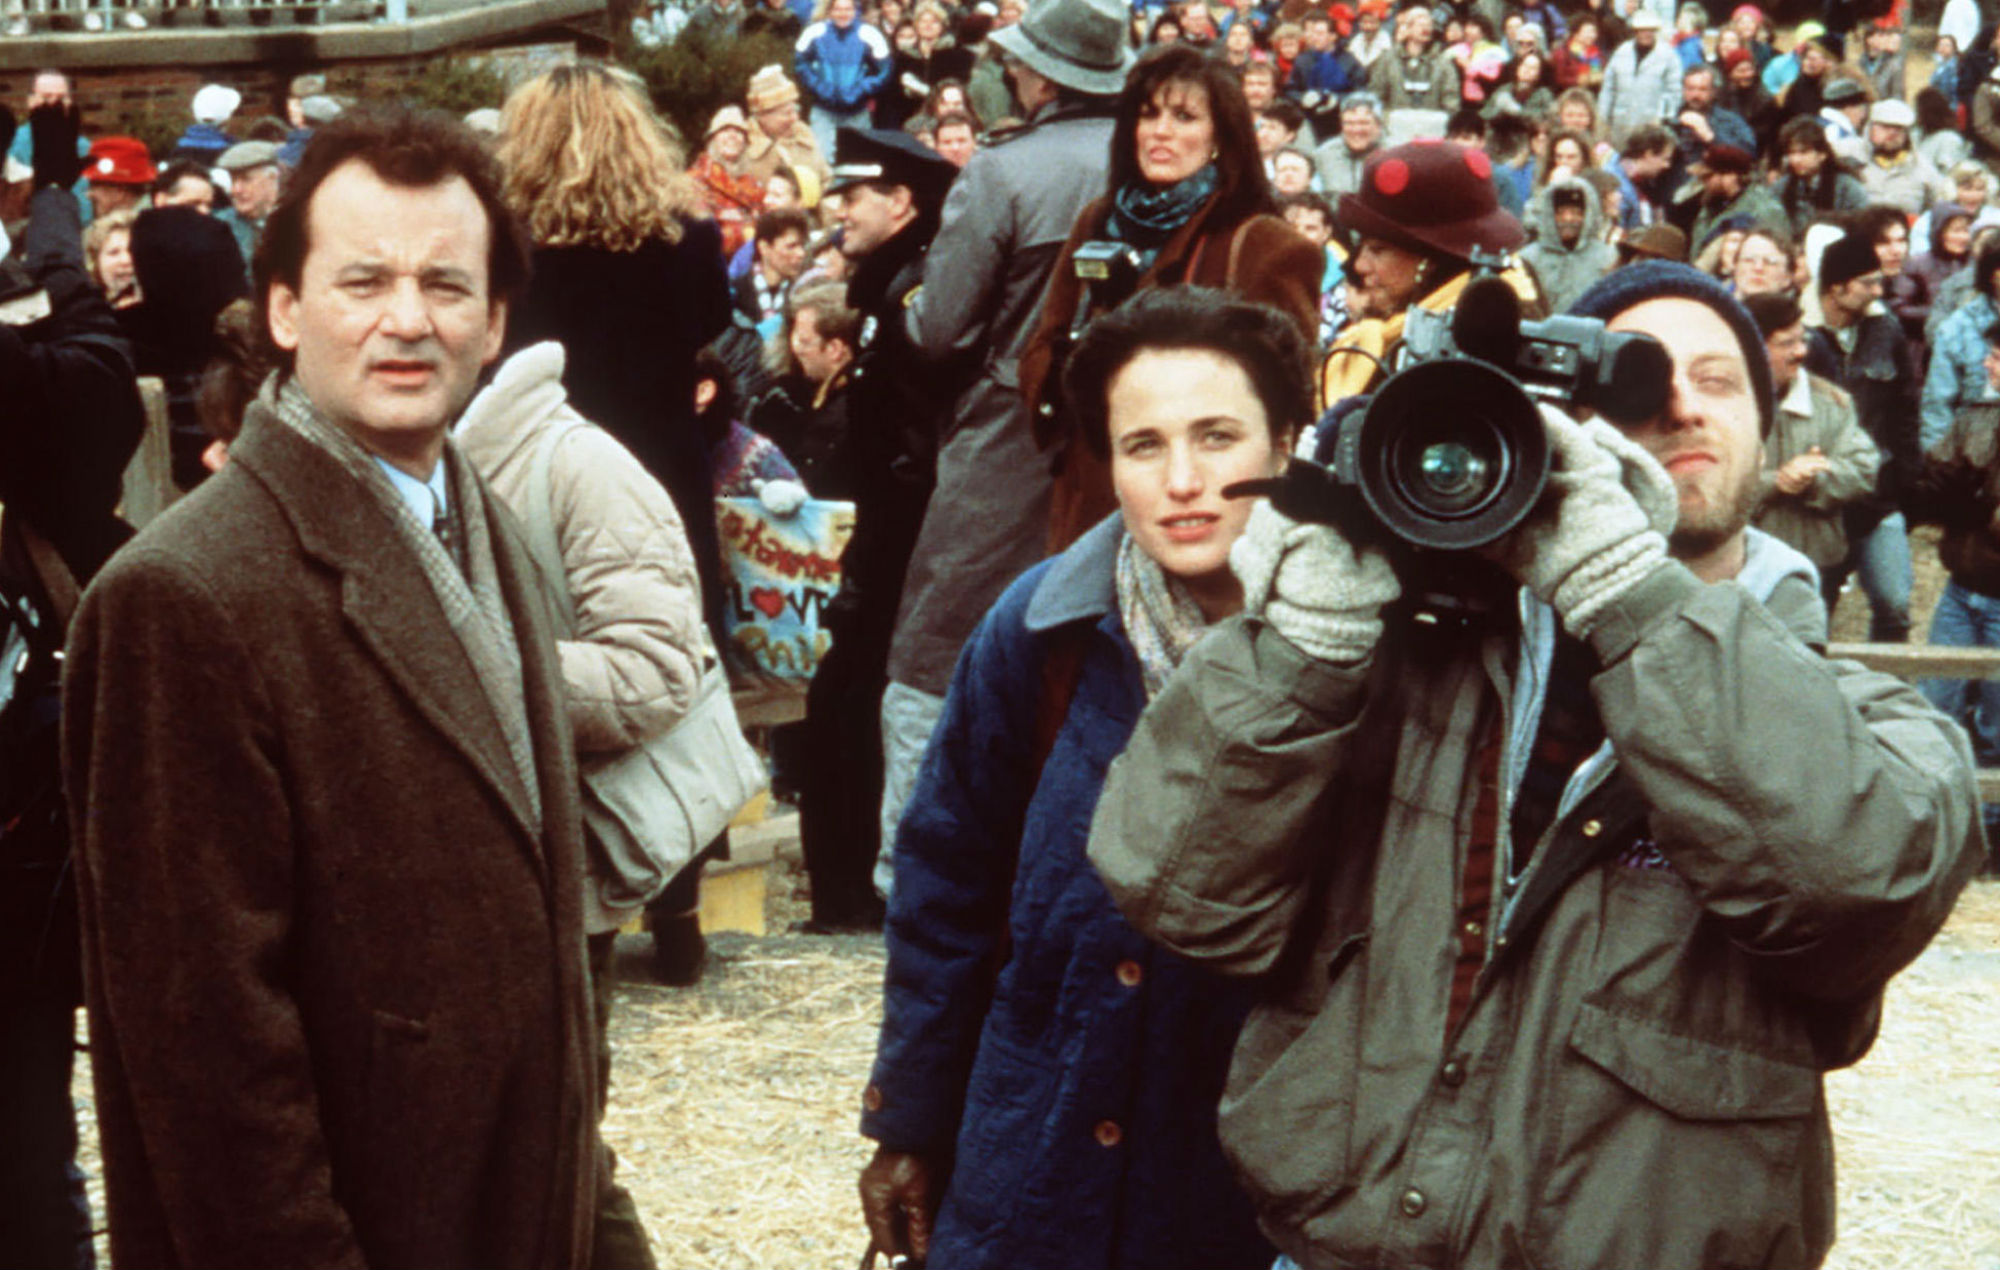 'Groundhog Day' TV series in the works, set 30 years after the film | NME